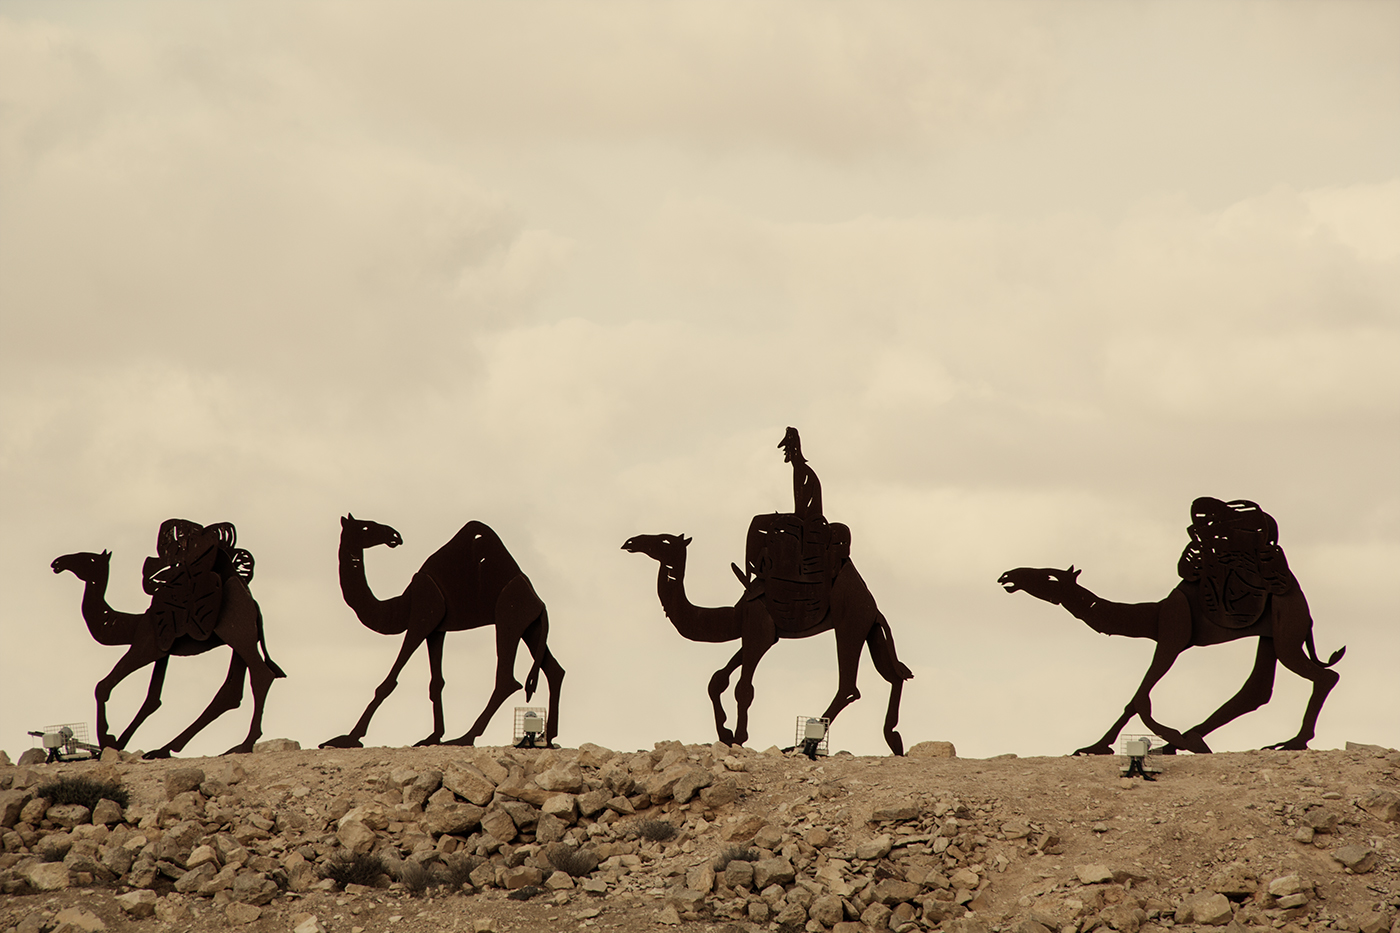 Just follow the camels!